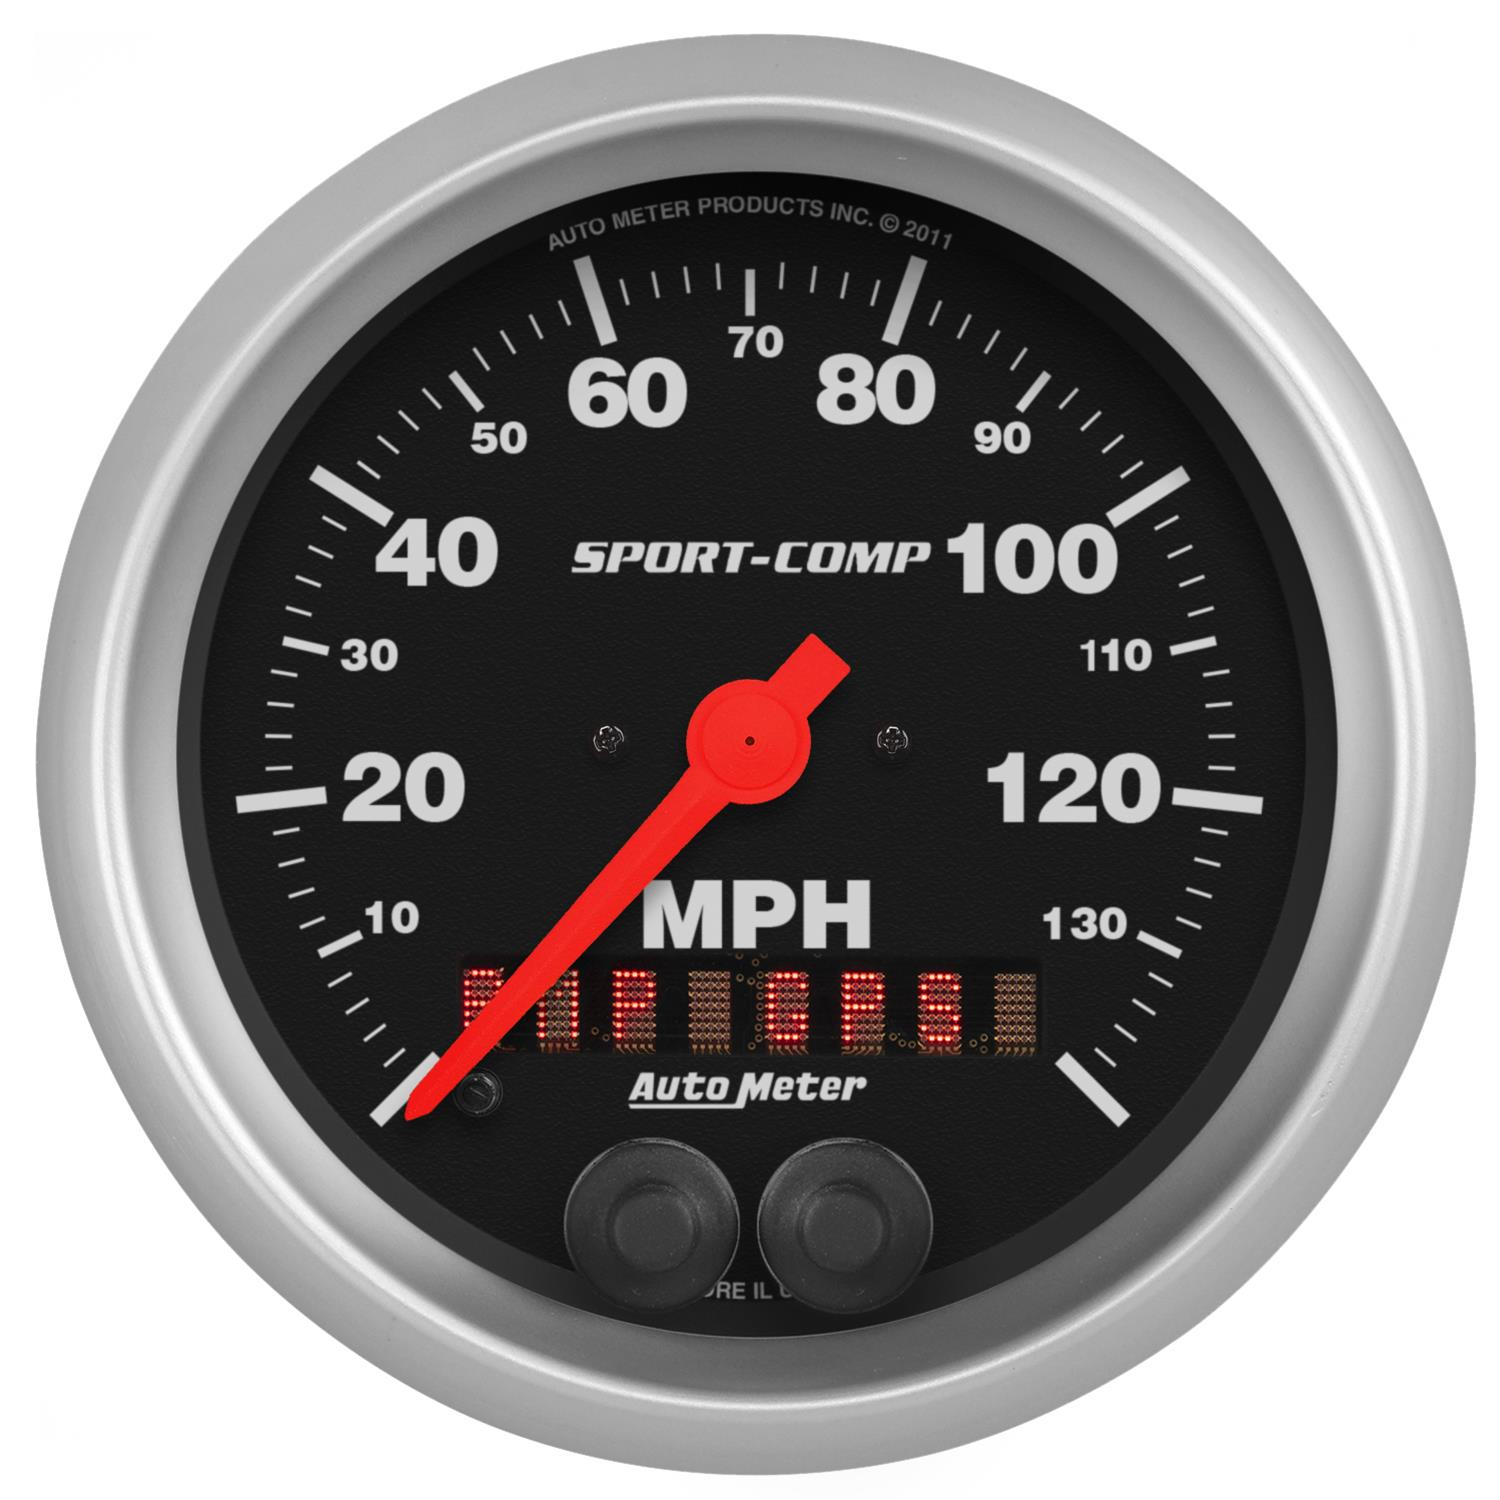 Auto Meter Electronic Speedometers : Auto meter sport comp series gps enabled speedometer